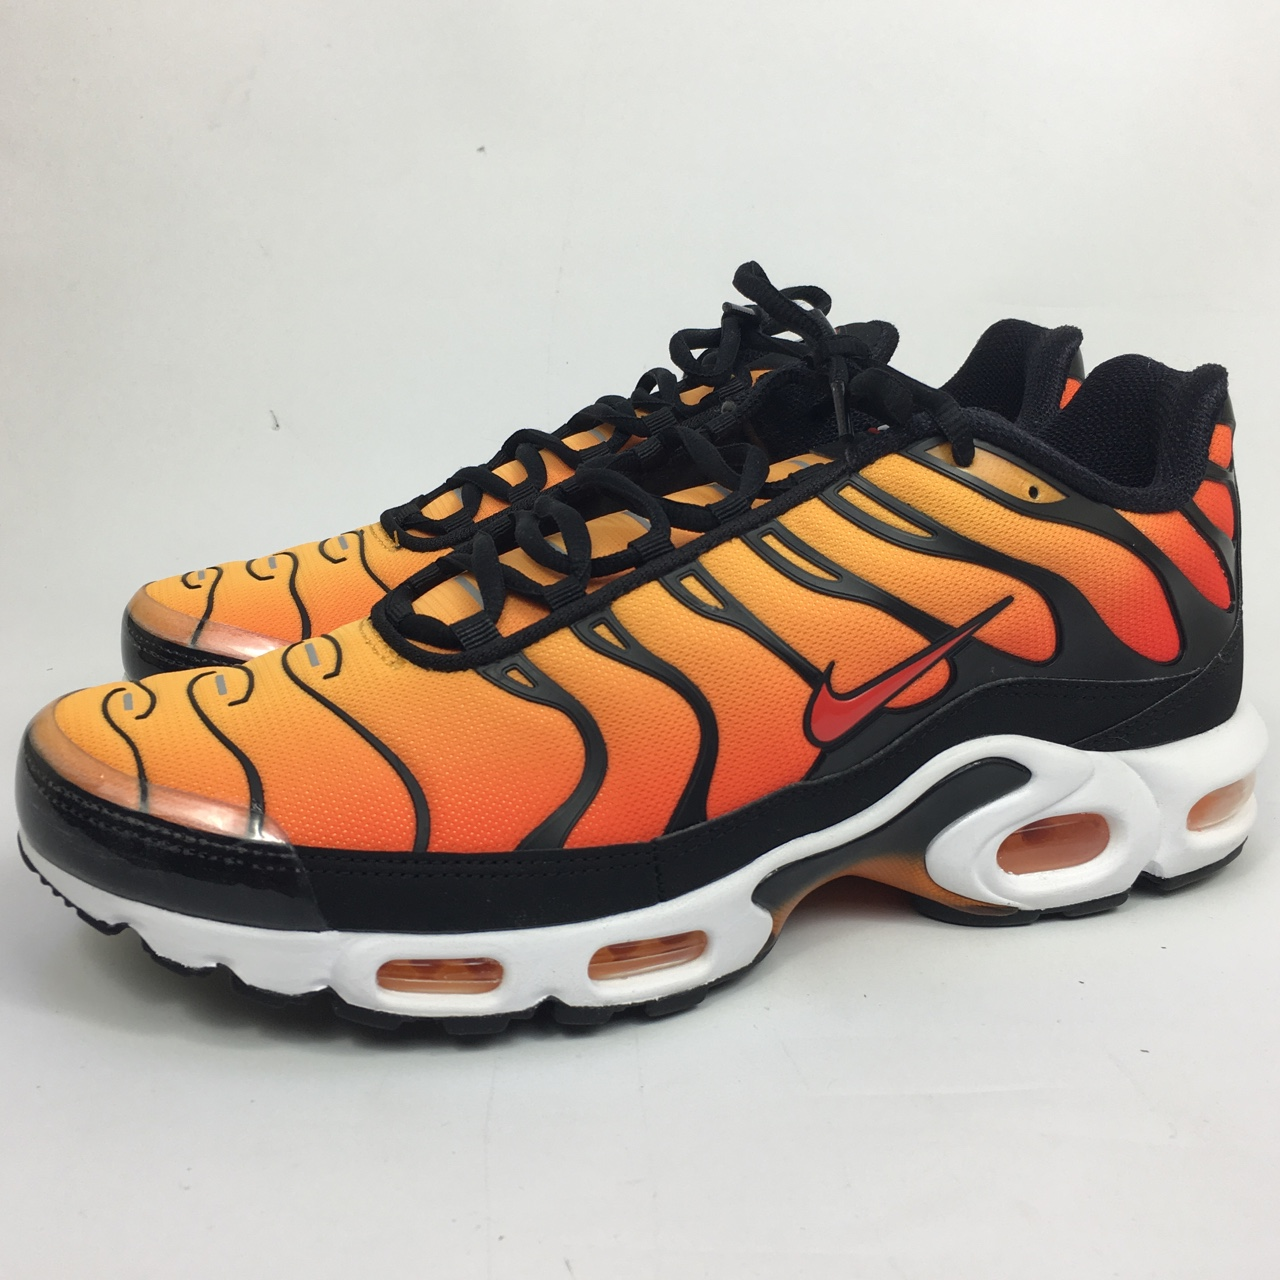 "promo code bf5ba 77b3e Nike Air Max Plus TN OG ""Tiger"" - Size UK 11 - These... - Depop"